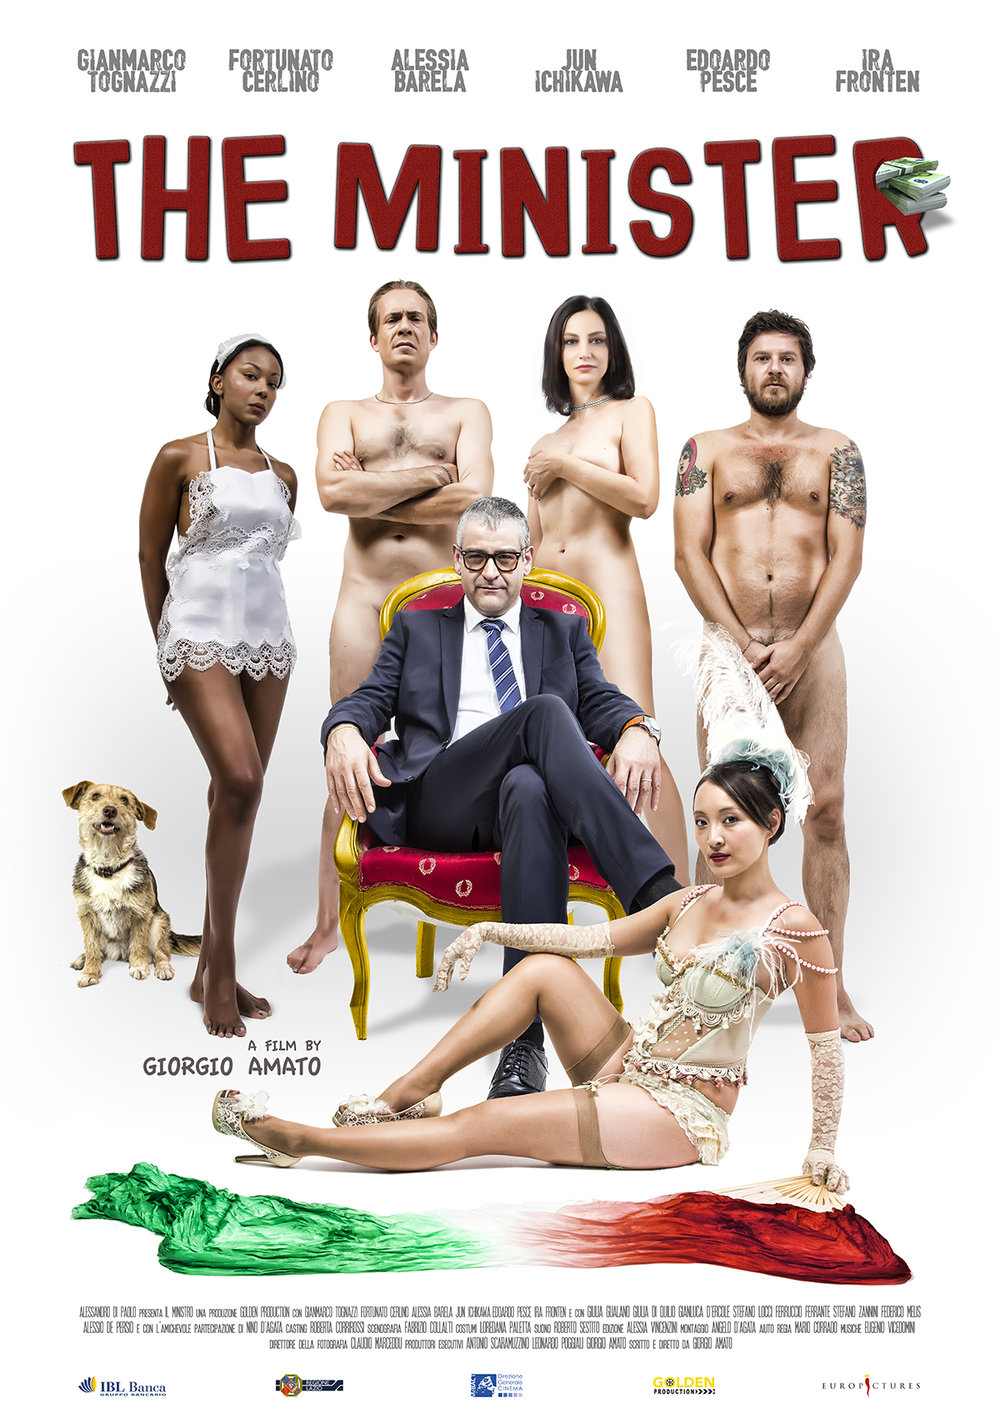 THE MINISTER-poster ENG_small.jpg